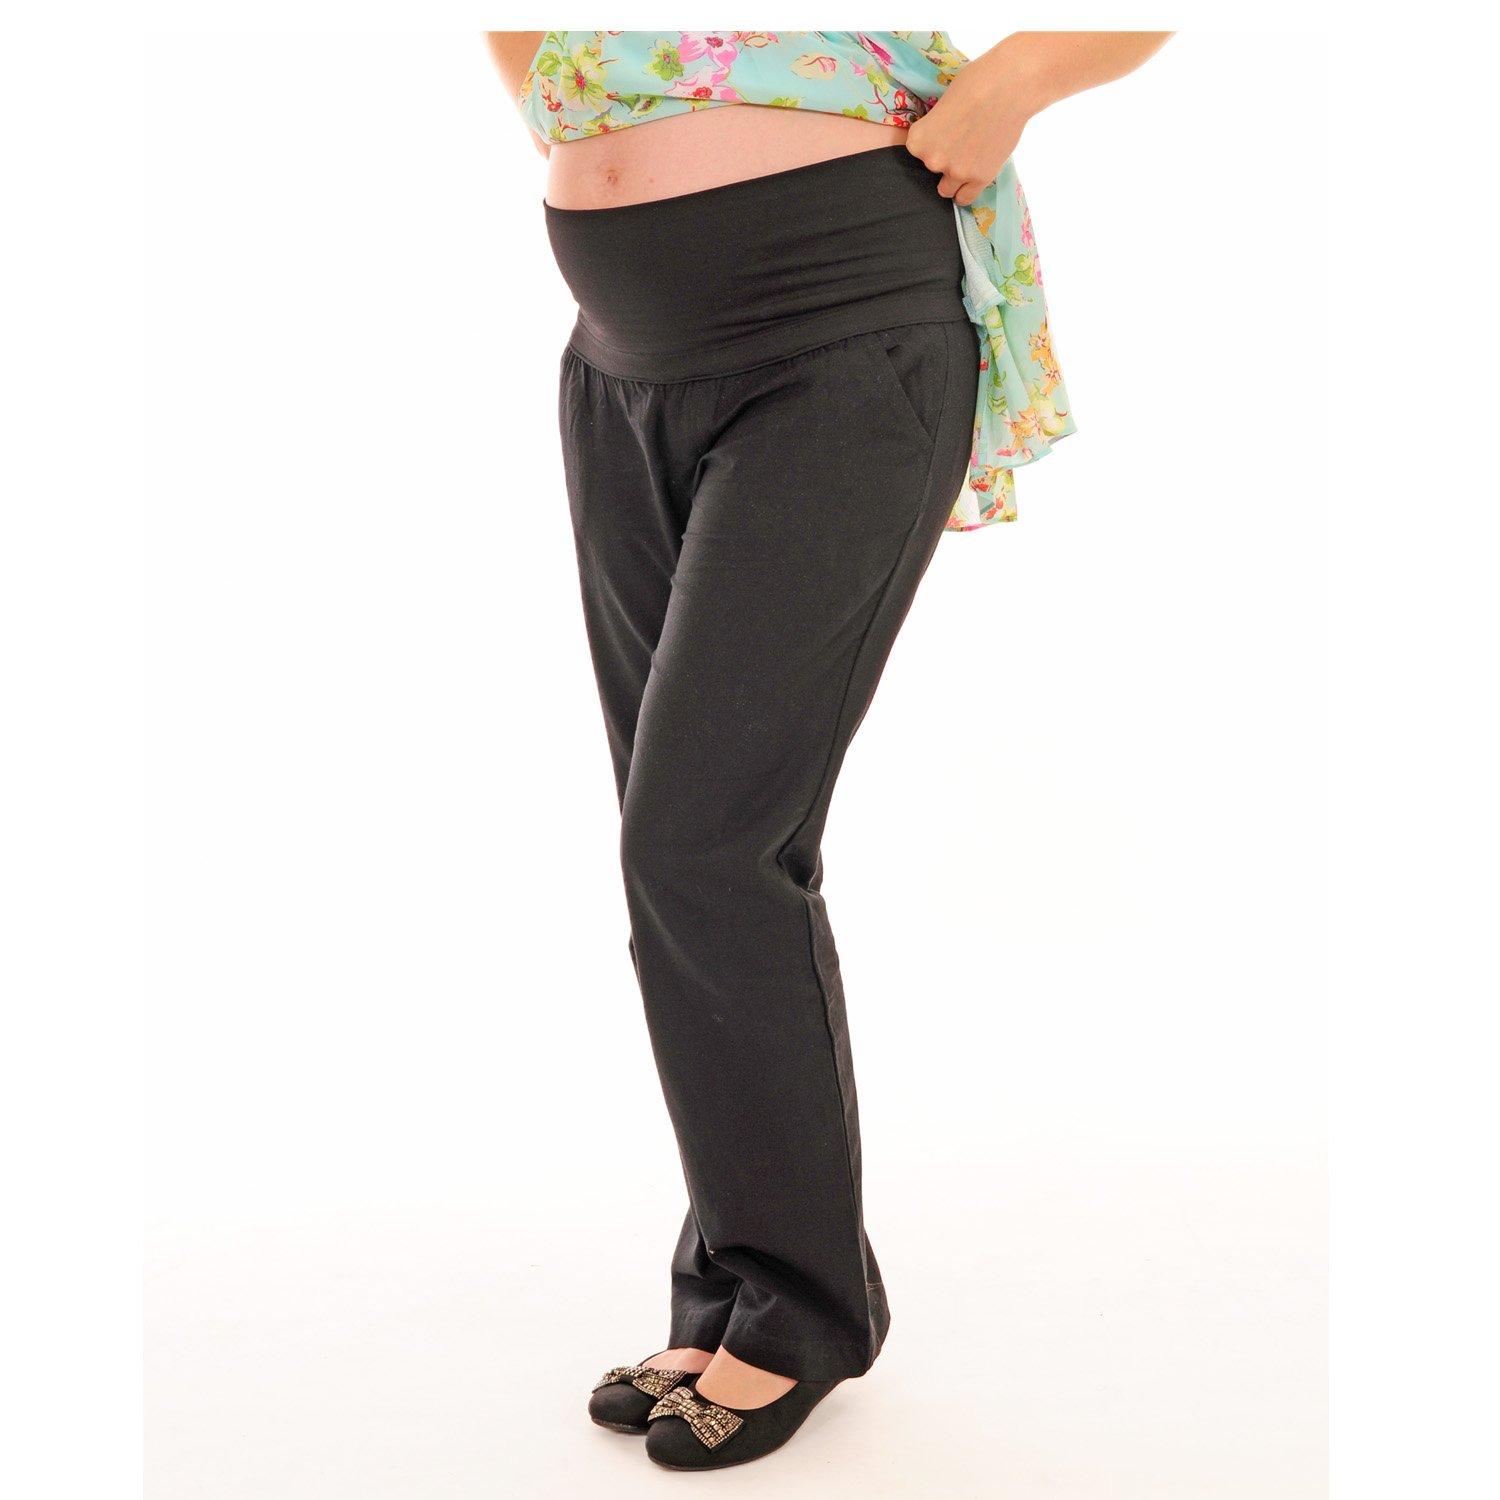 Black Linen Loose Fit Maternity Pregnancy Clothing Over Bump Trousers